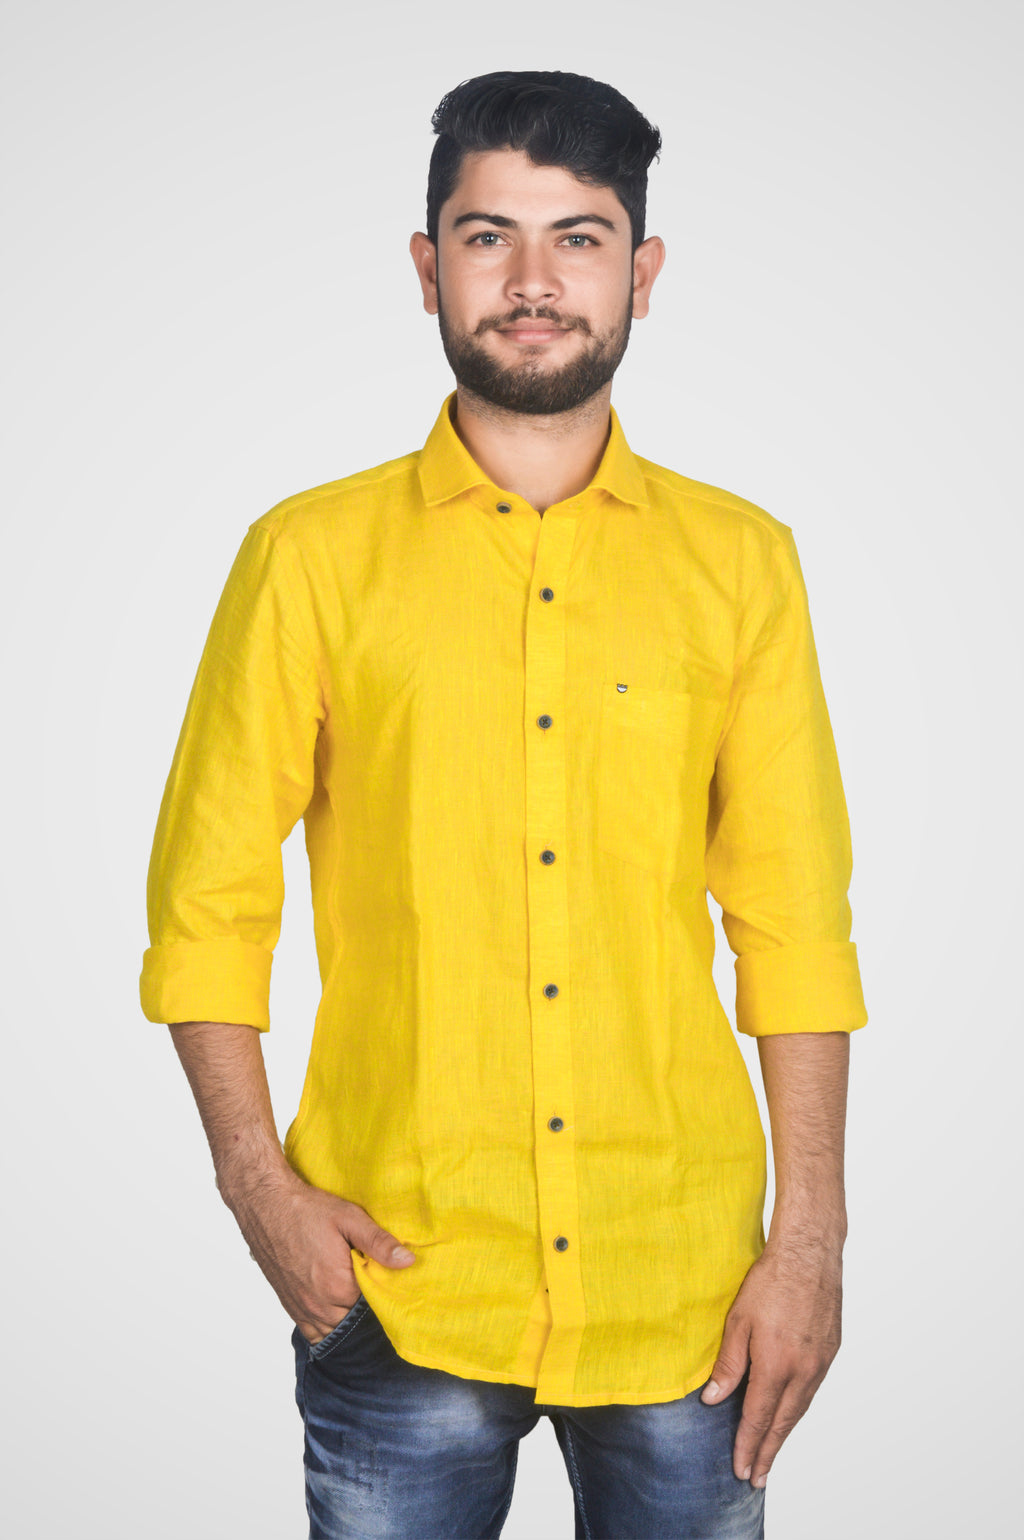 Zerox Men's Plain Pure Linen Full Sleeves Regular Fit Formal Shirt (Yellow) By Indians Boutique